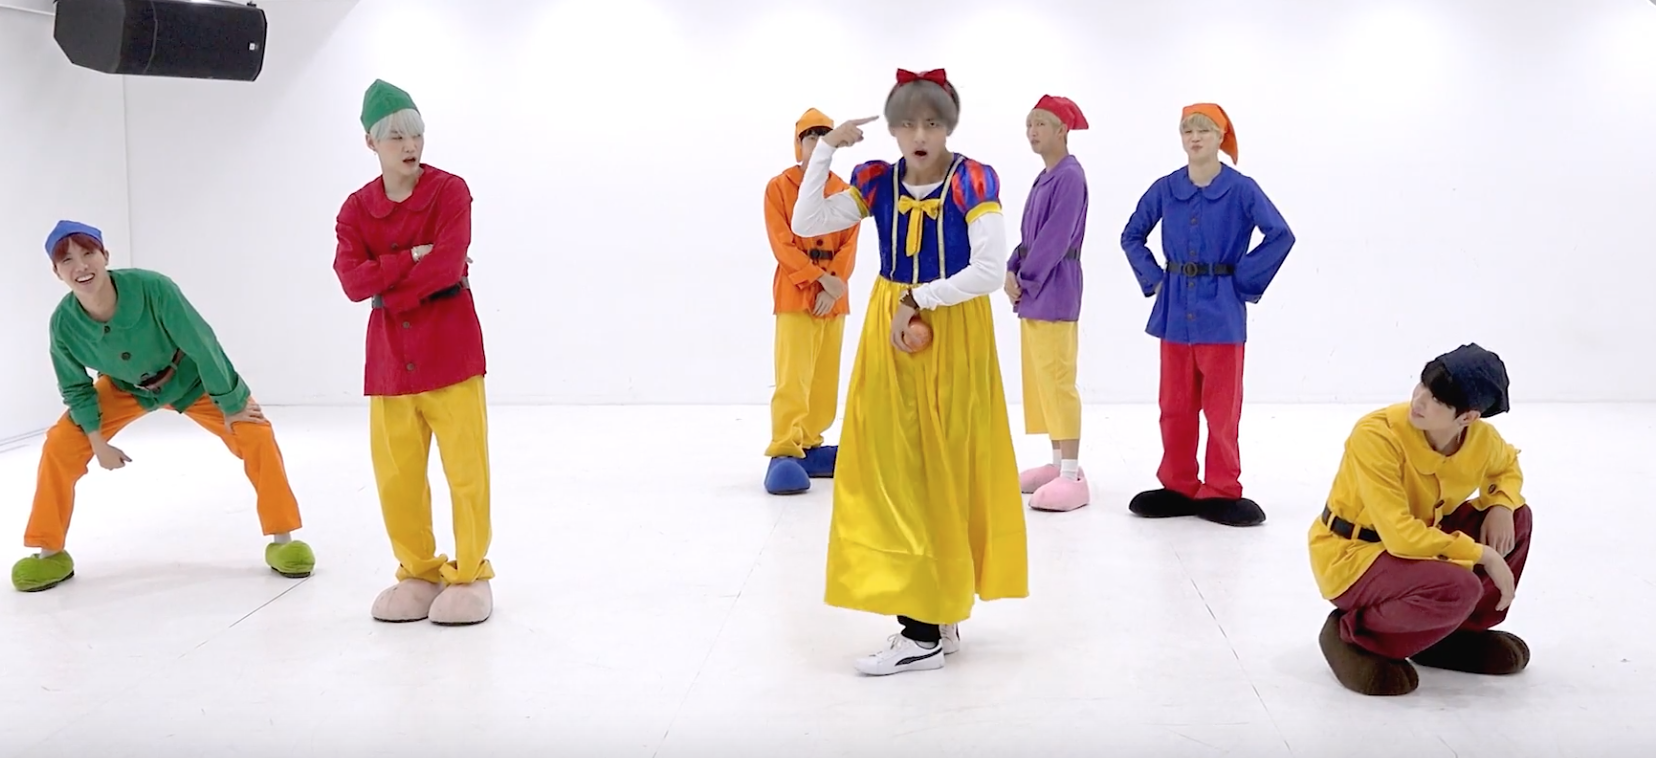 d22c249bd5101 BTS Hilariously Dress Up as Snow White & The Seven Dwarfs for Dance  Rehearsal